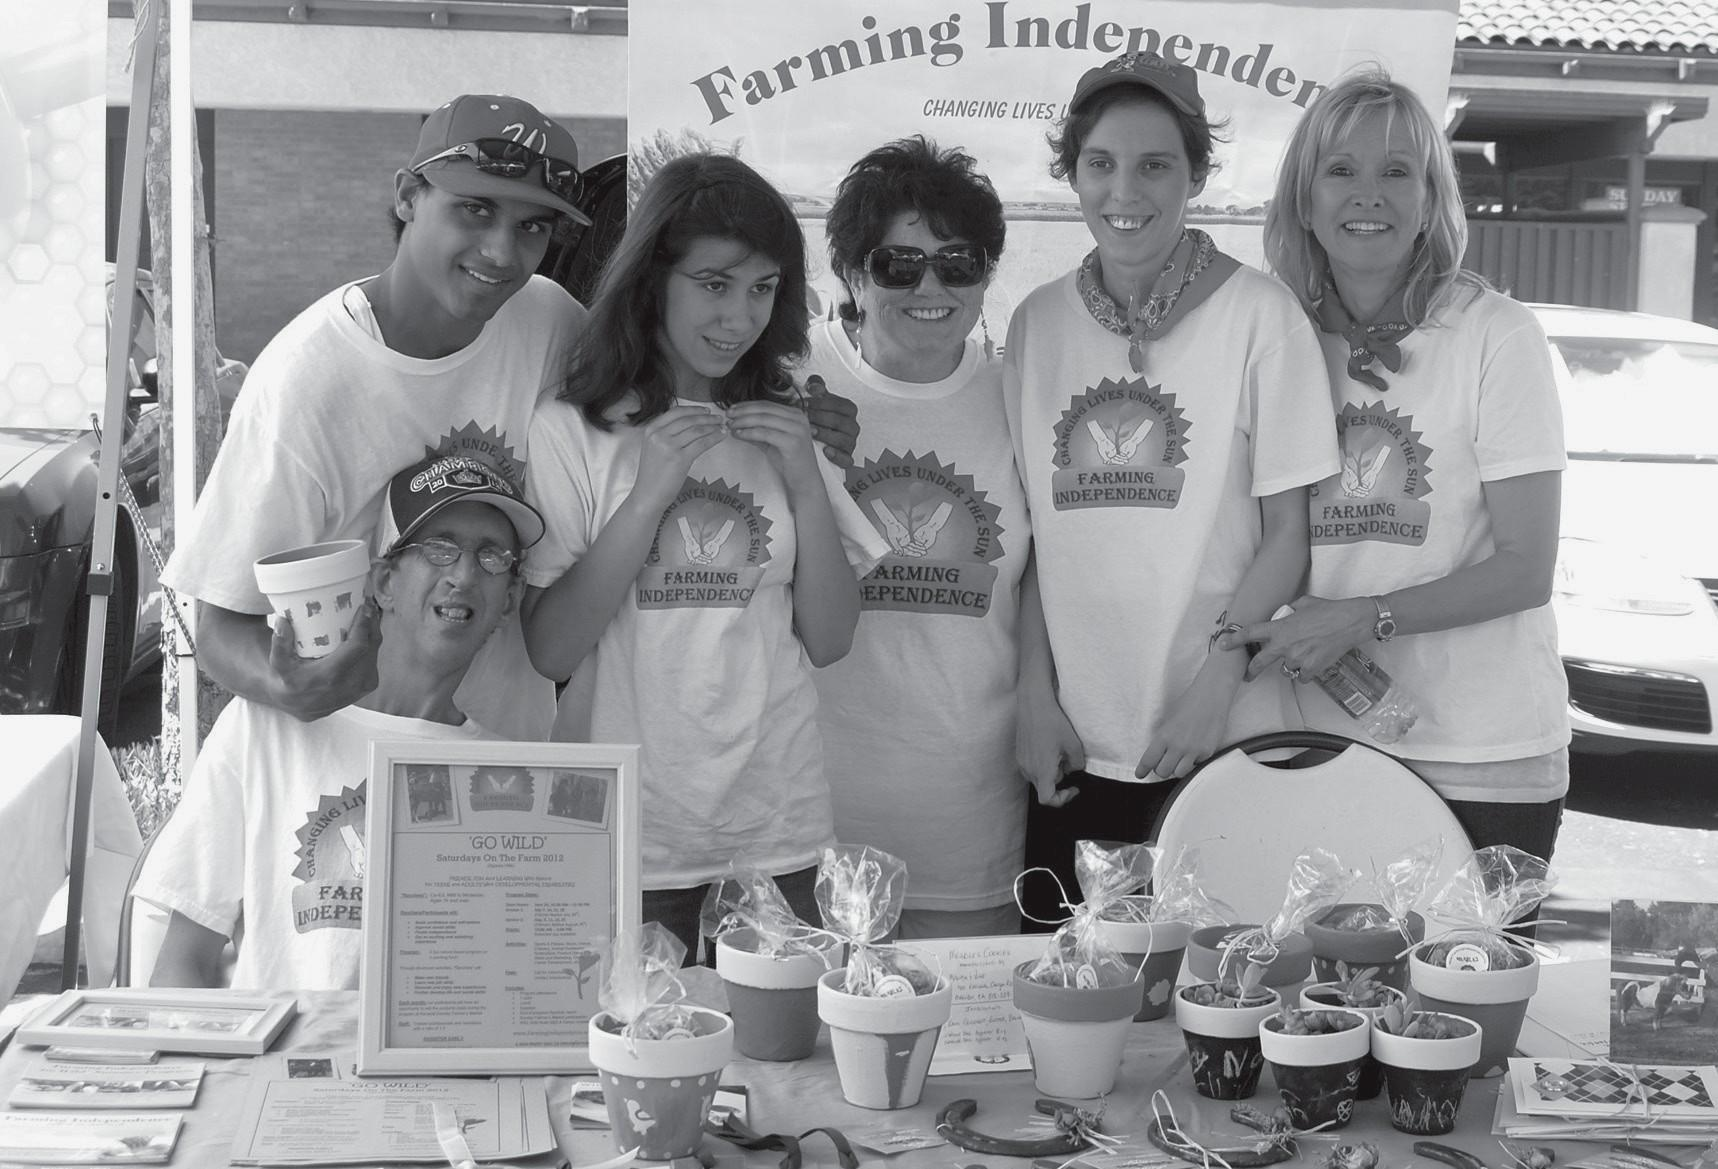 YOUNG ENTREPRENEURS—Special needs adults sell their crafts and baked goods at the Westlake Village farmers market on Sun., July 29, culminating the month-long Saturdays On The Farm program in Old Agoura. Some of the participants are, Ben, seated, standing from left: Michael, Kayley, volunteer Chris Thorkill, Lauren and program founder Sheila Mayfield. A second session of Saturdays On The Farm begins this weekend. For more information, visit www.farmingindependence.org.